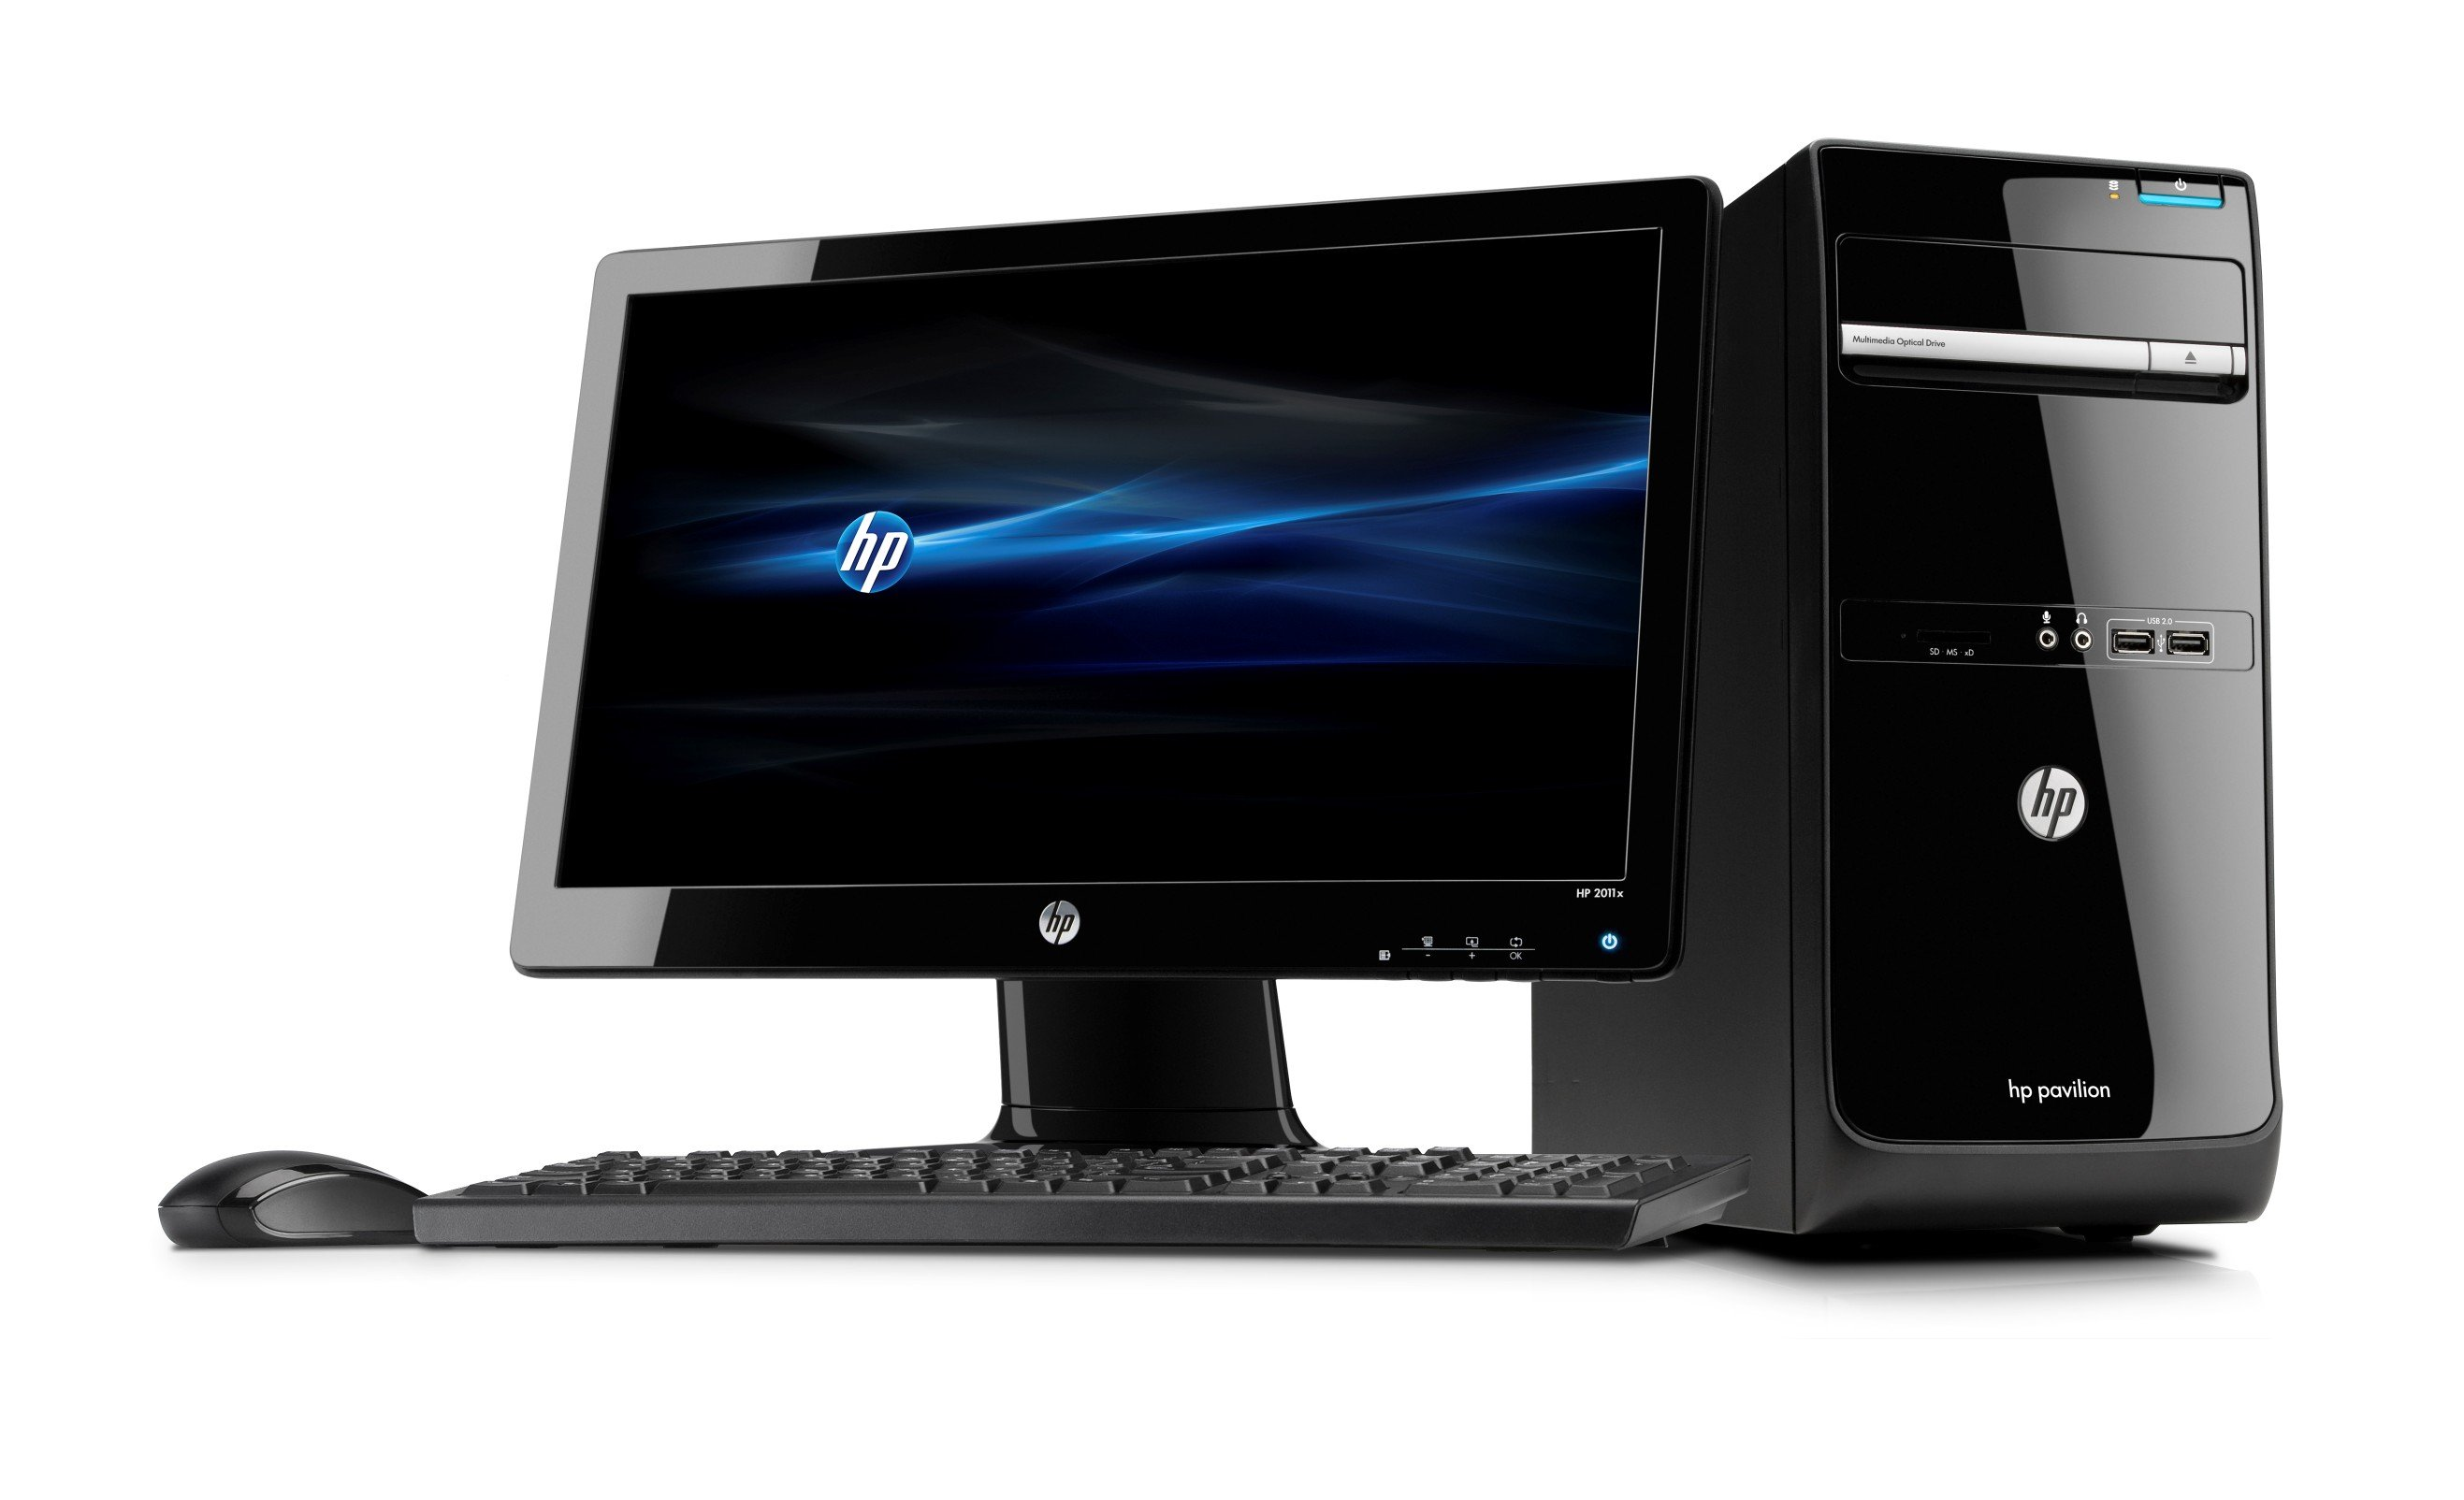 HP P6-2005ukm G620 Desktop PC with 20 inch LED LCD: Amazon ...